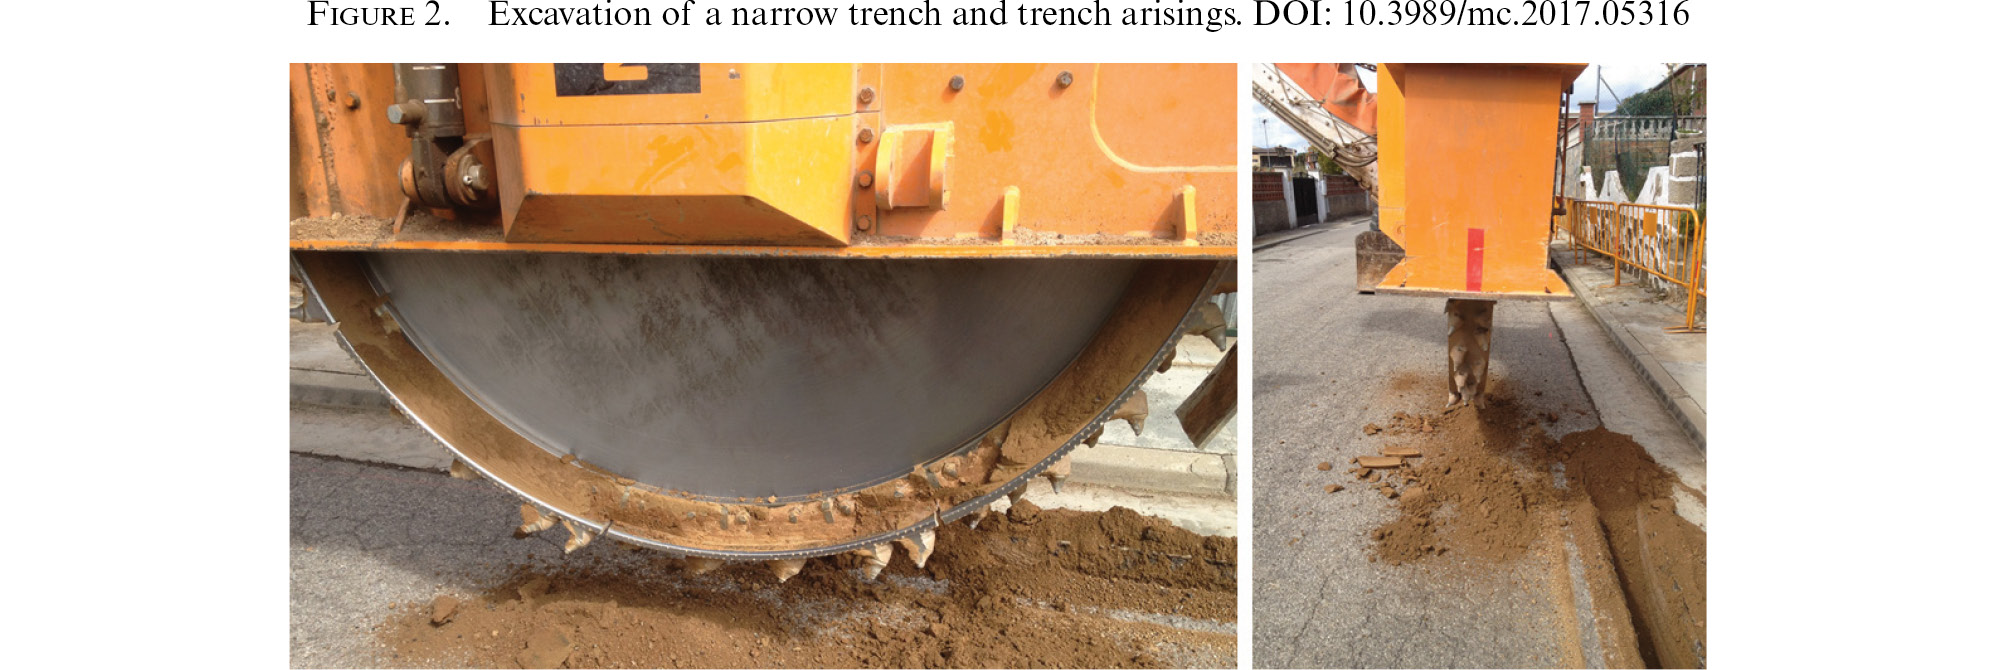 Eco-trench: a novel trench solution based on reusing excavated